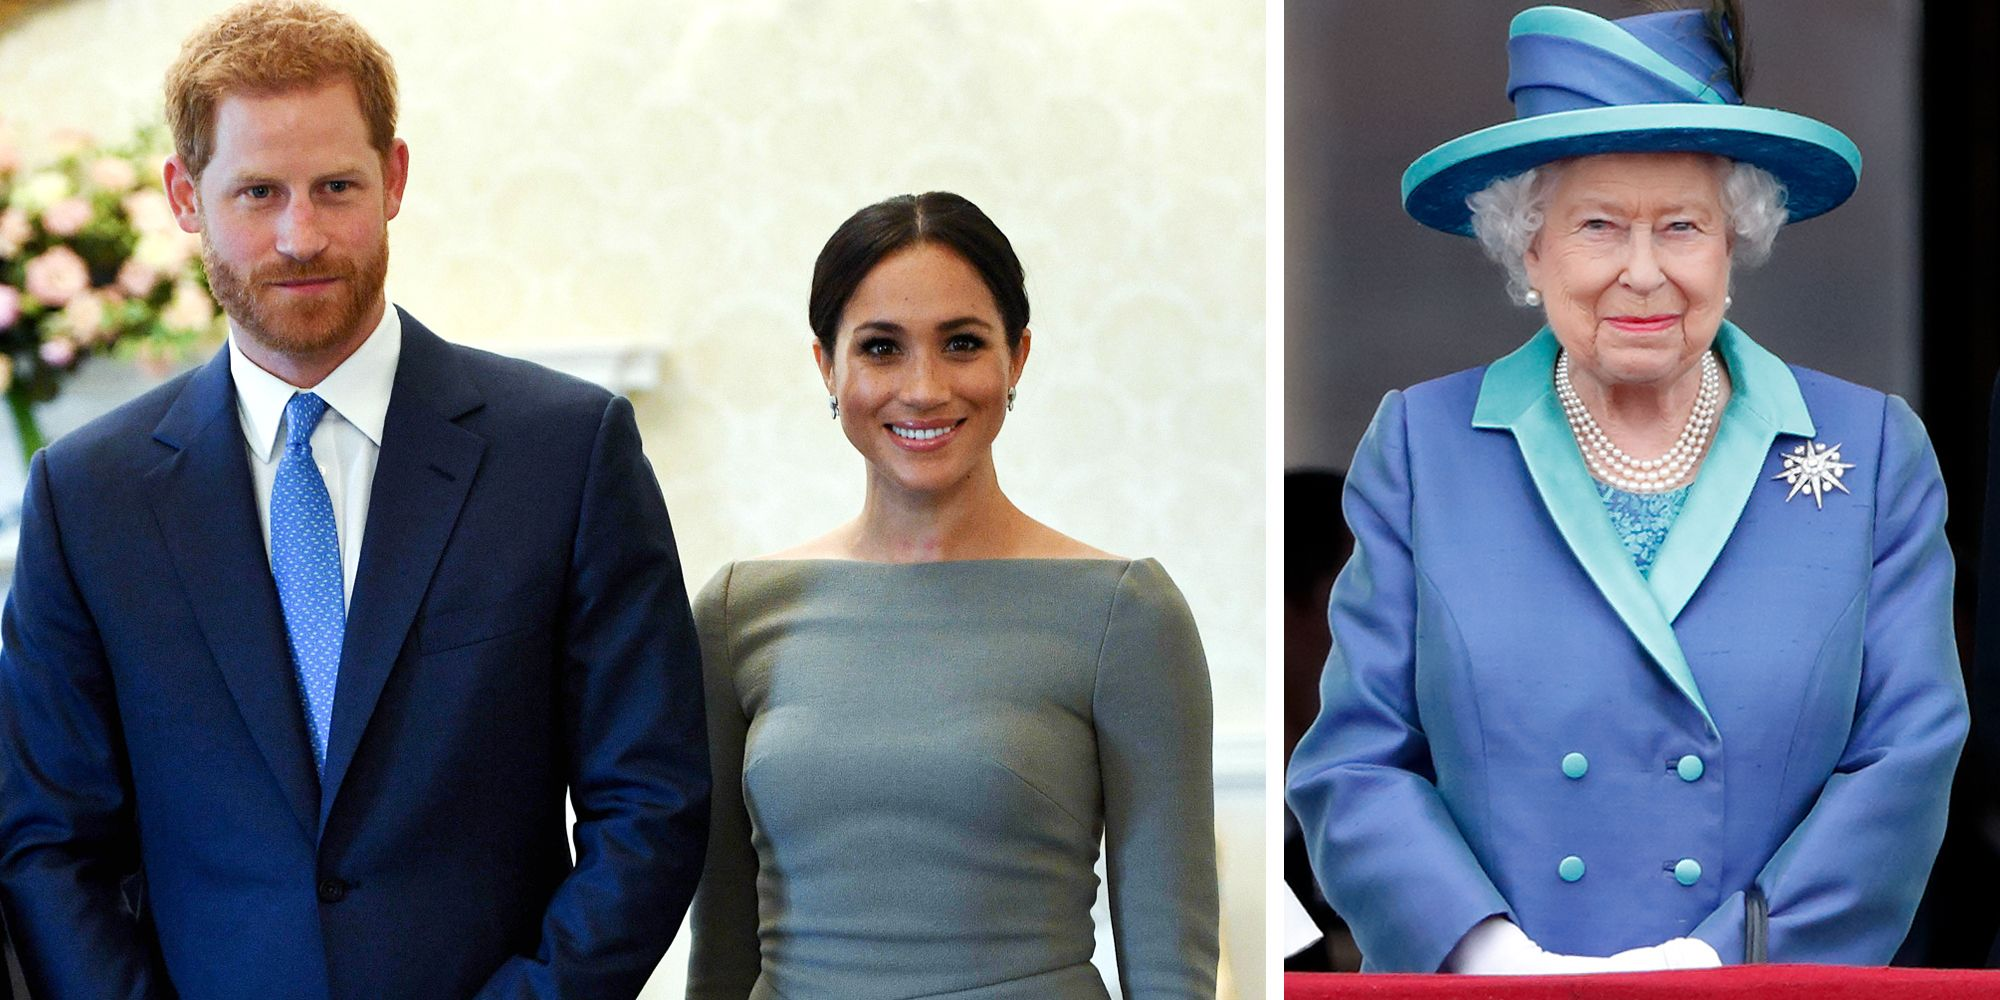 Meghan Markle and Prince Harry Will Reportedly Vacation in Scotland with the Queen